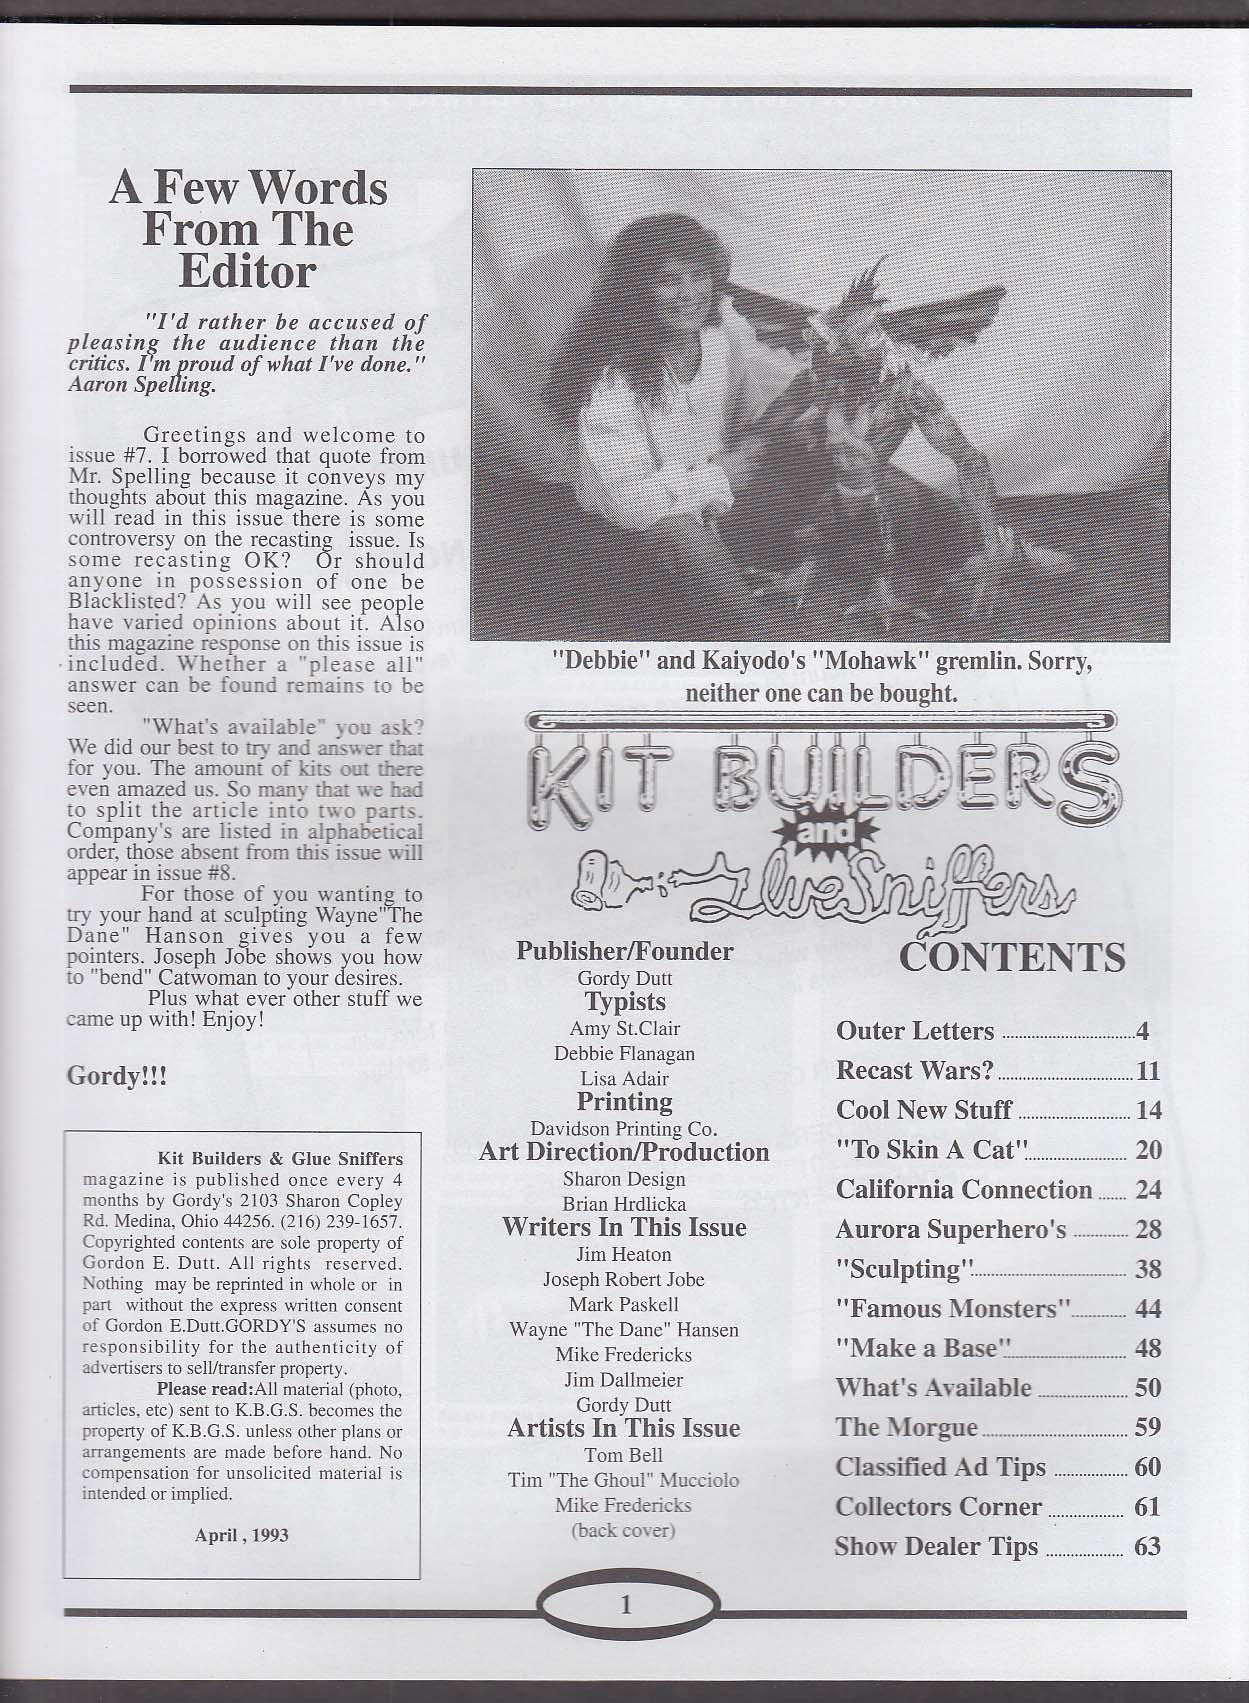 KIT BUILDERS & GLUE SNIFFERS #7 Aurora Sueprheroes Catwoman How to Sculpt 4 1993